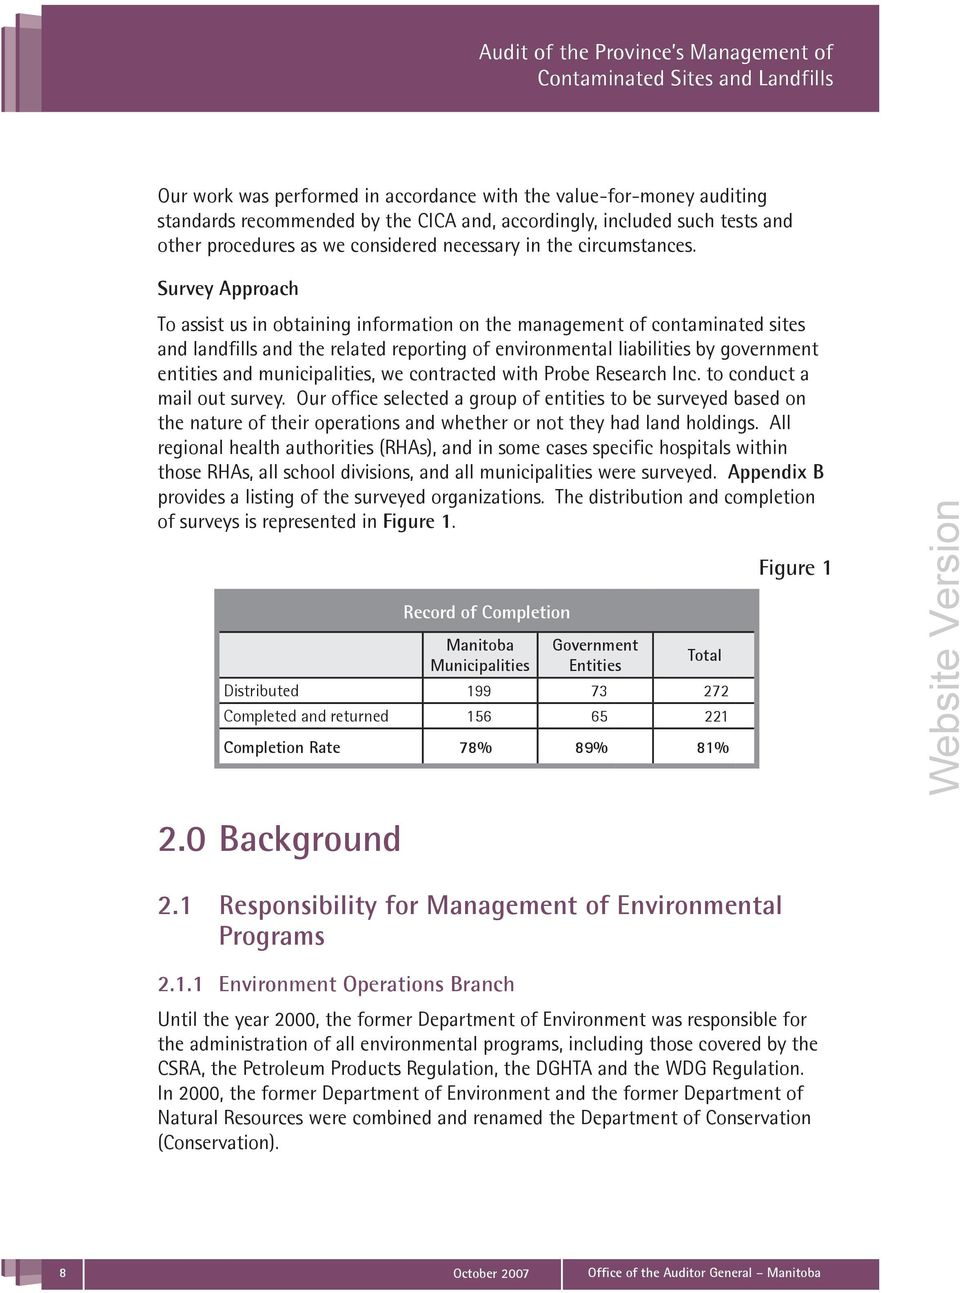 Survey Approach To assist us in obtaining information on the management of contaminated sites and landfills and the related reporting of environmental liabilities by government entities and